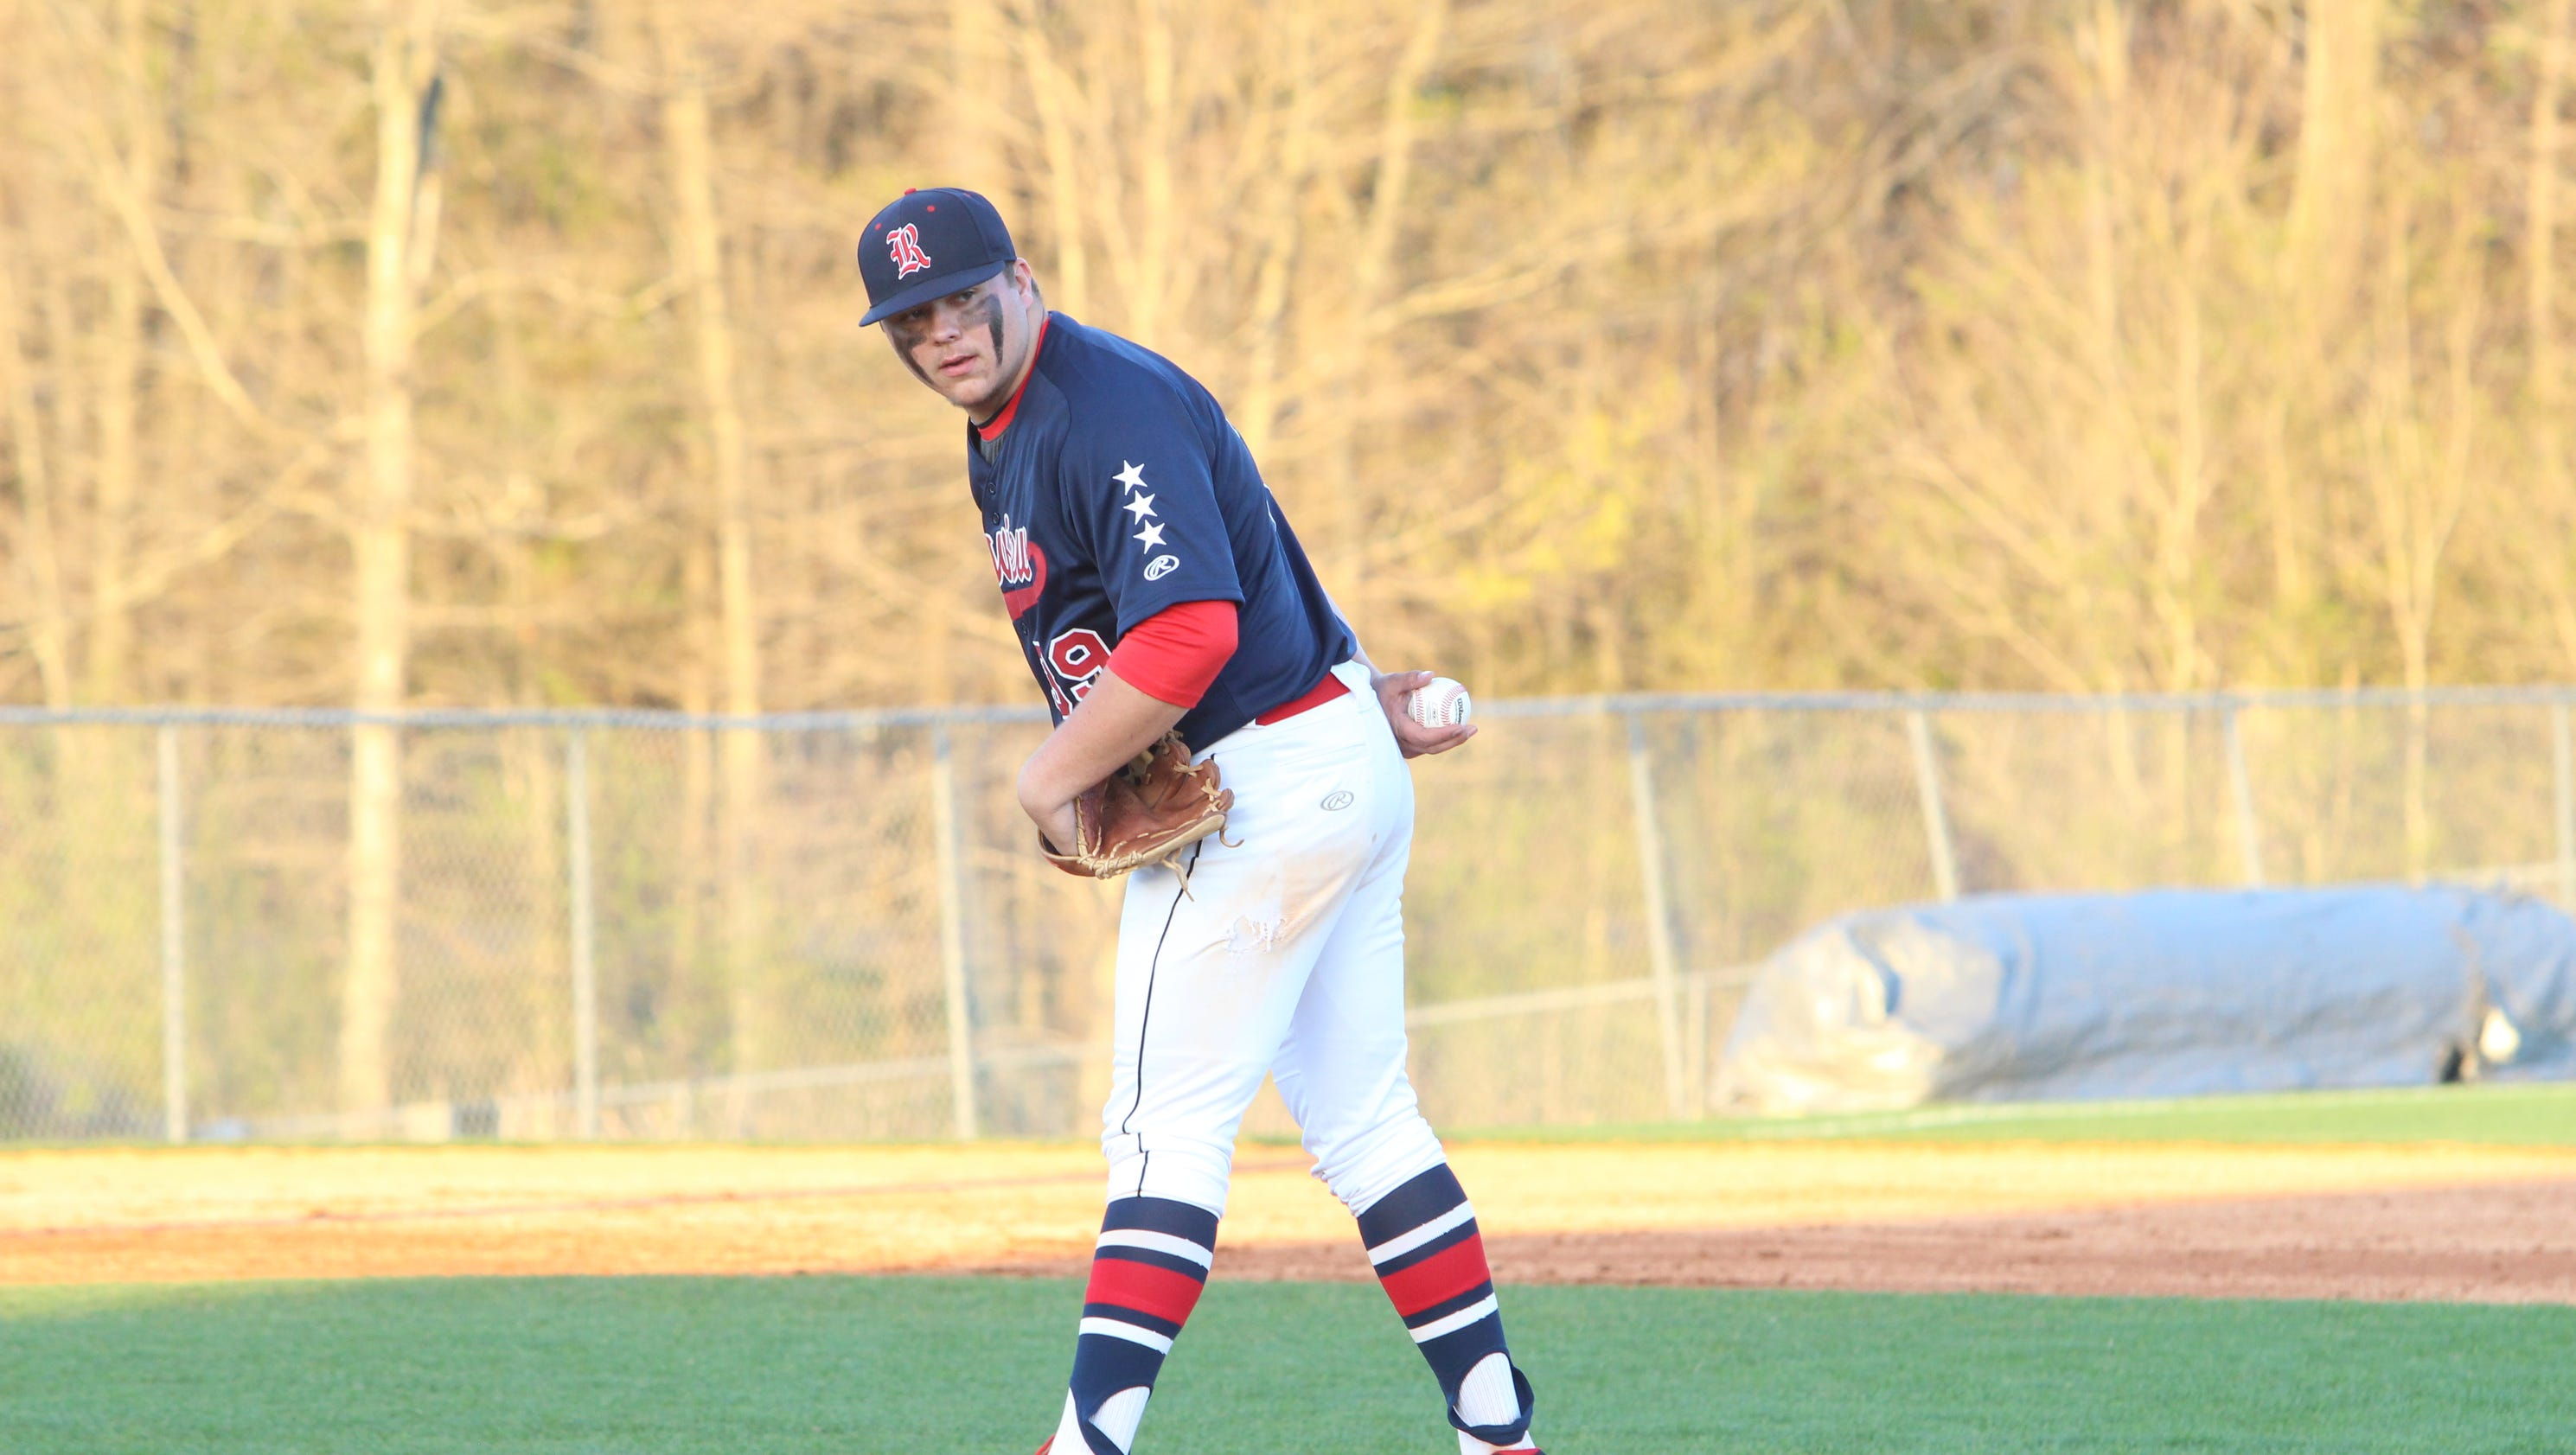 wilson mace top pitchers in montgomery county so far